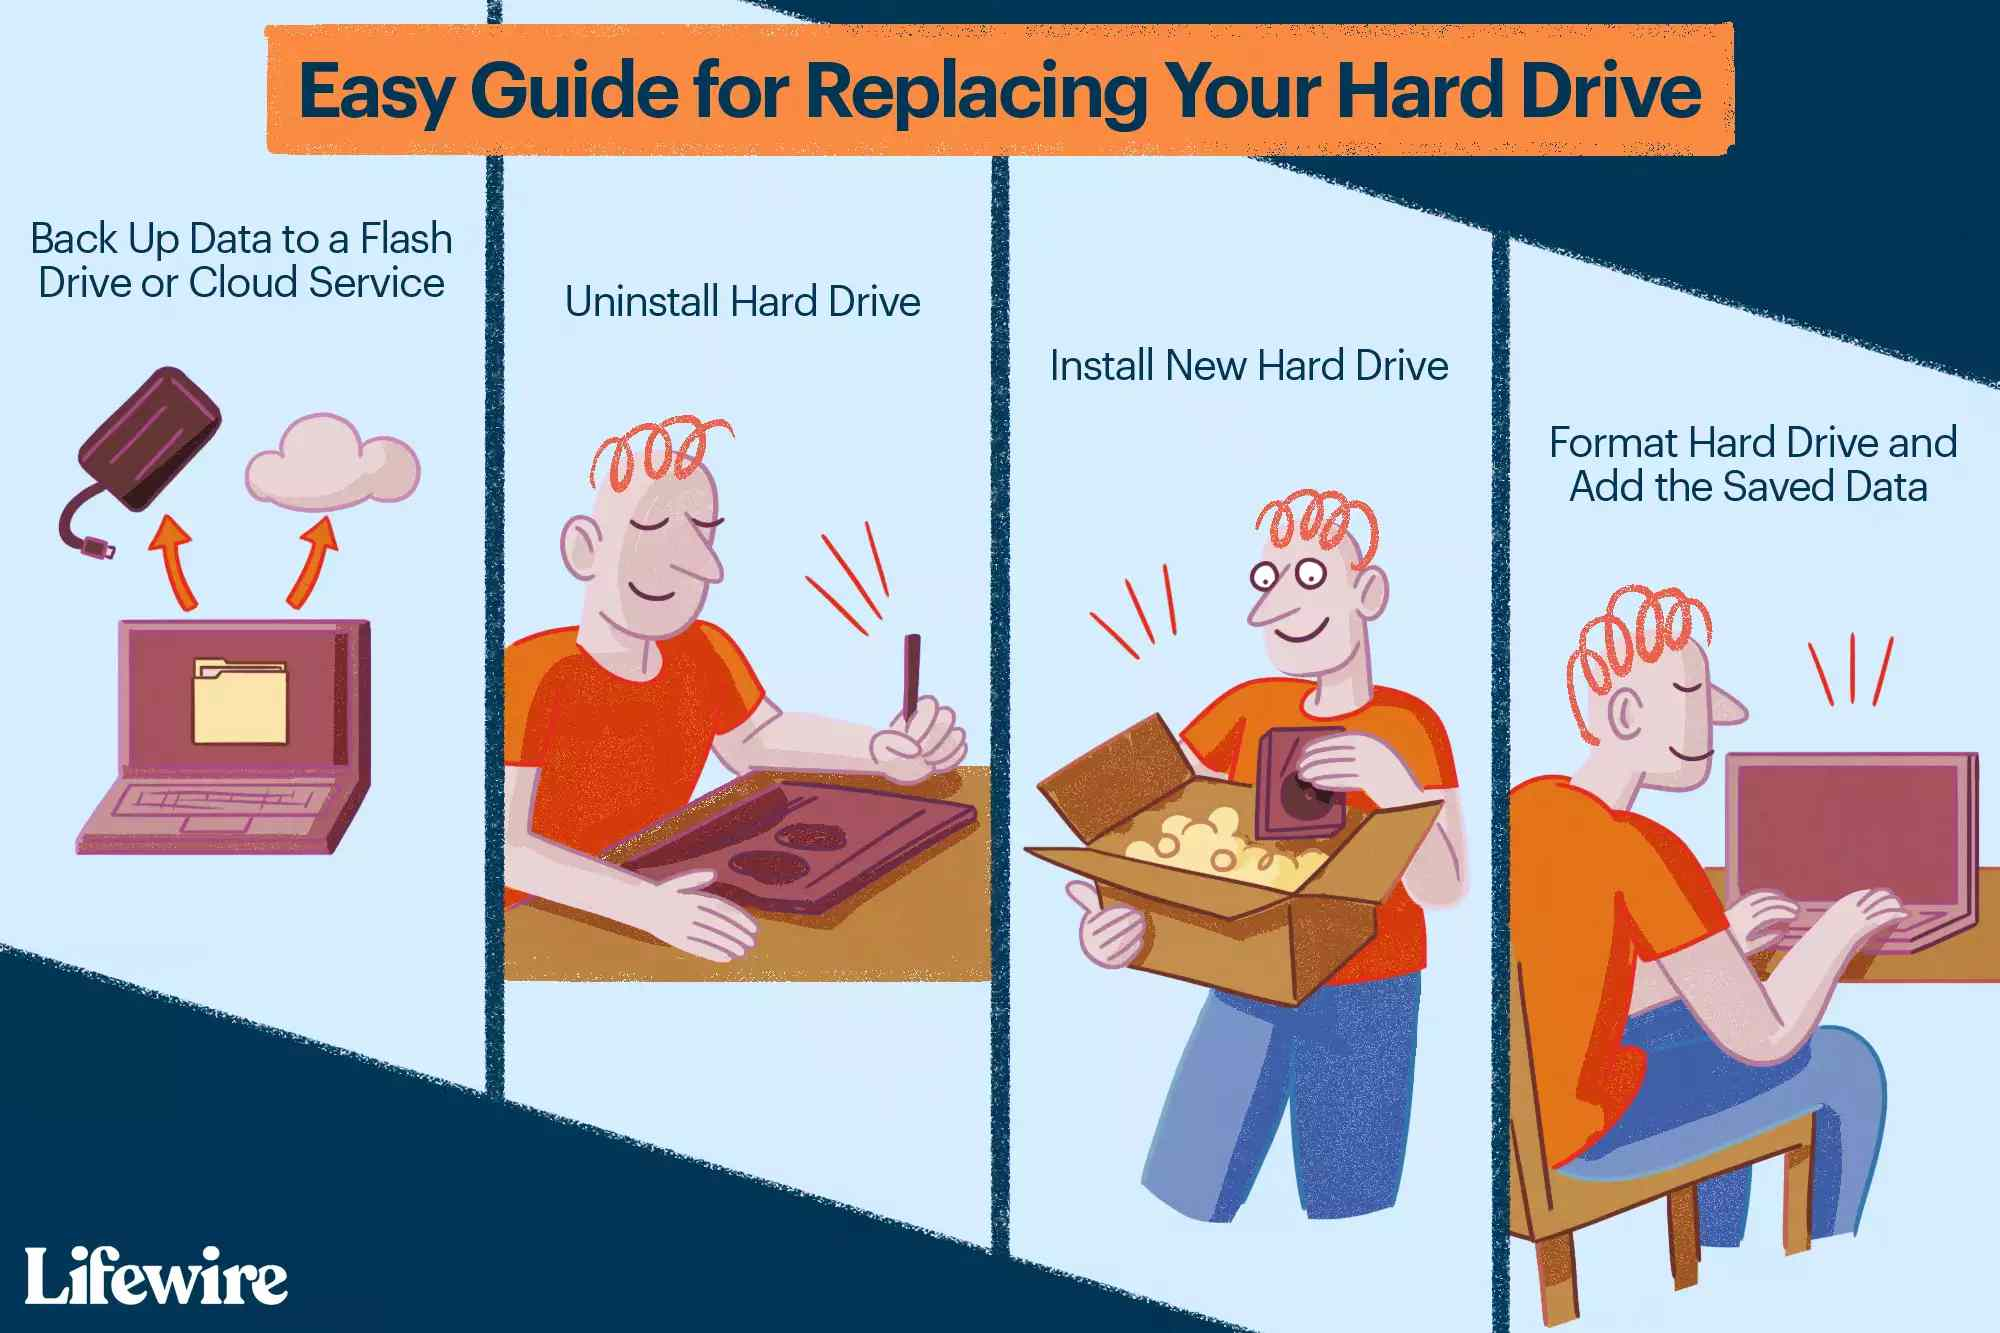 How to Replace Your Hard Drive